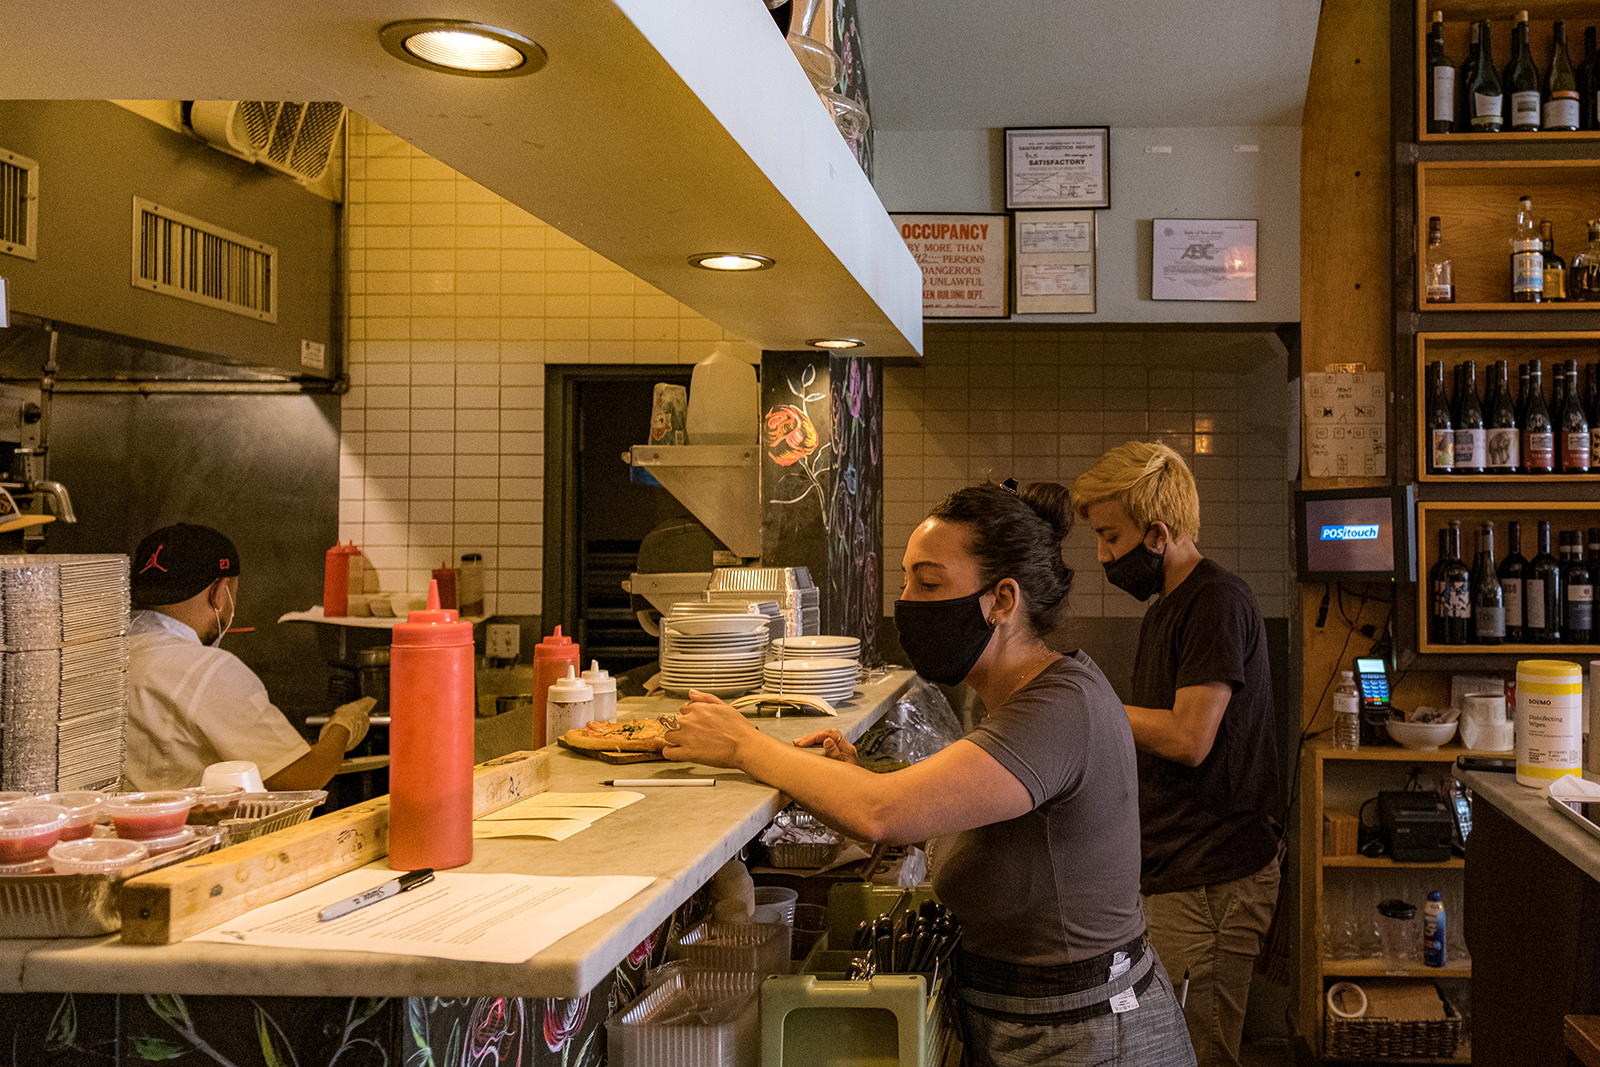 Restaurant staff wearing the protective masks work in the kitchen as the city reopens from the coronavirus lockdown on June 15 in Hoboken, New Jersey.